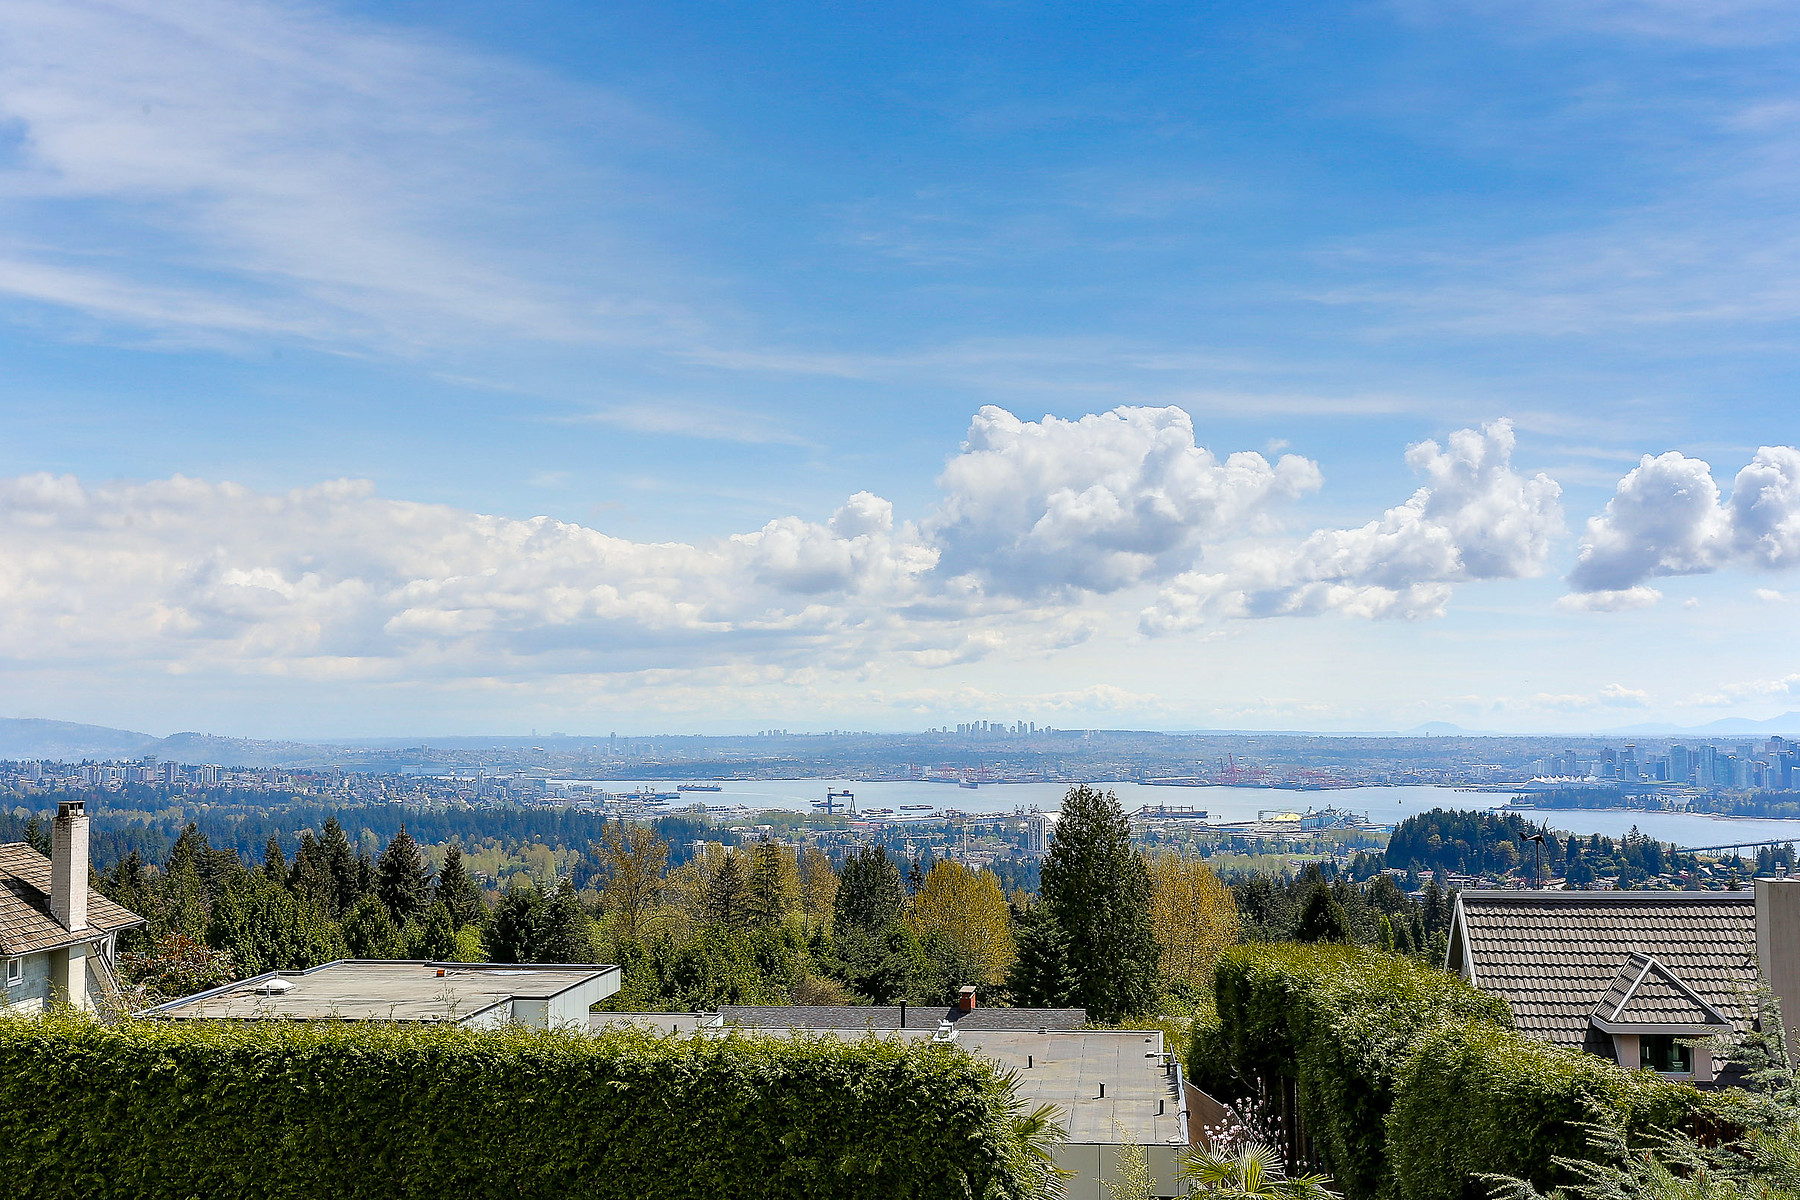 Single Family Home for Sale at West Vancouver, Greater Vancouver 1356 Chartwell Drive West Vancouver, British Columbia, V7S 2R5 Canada